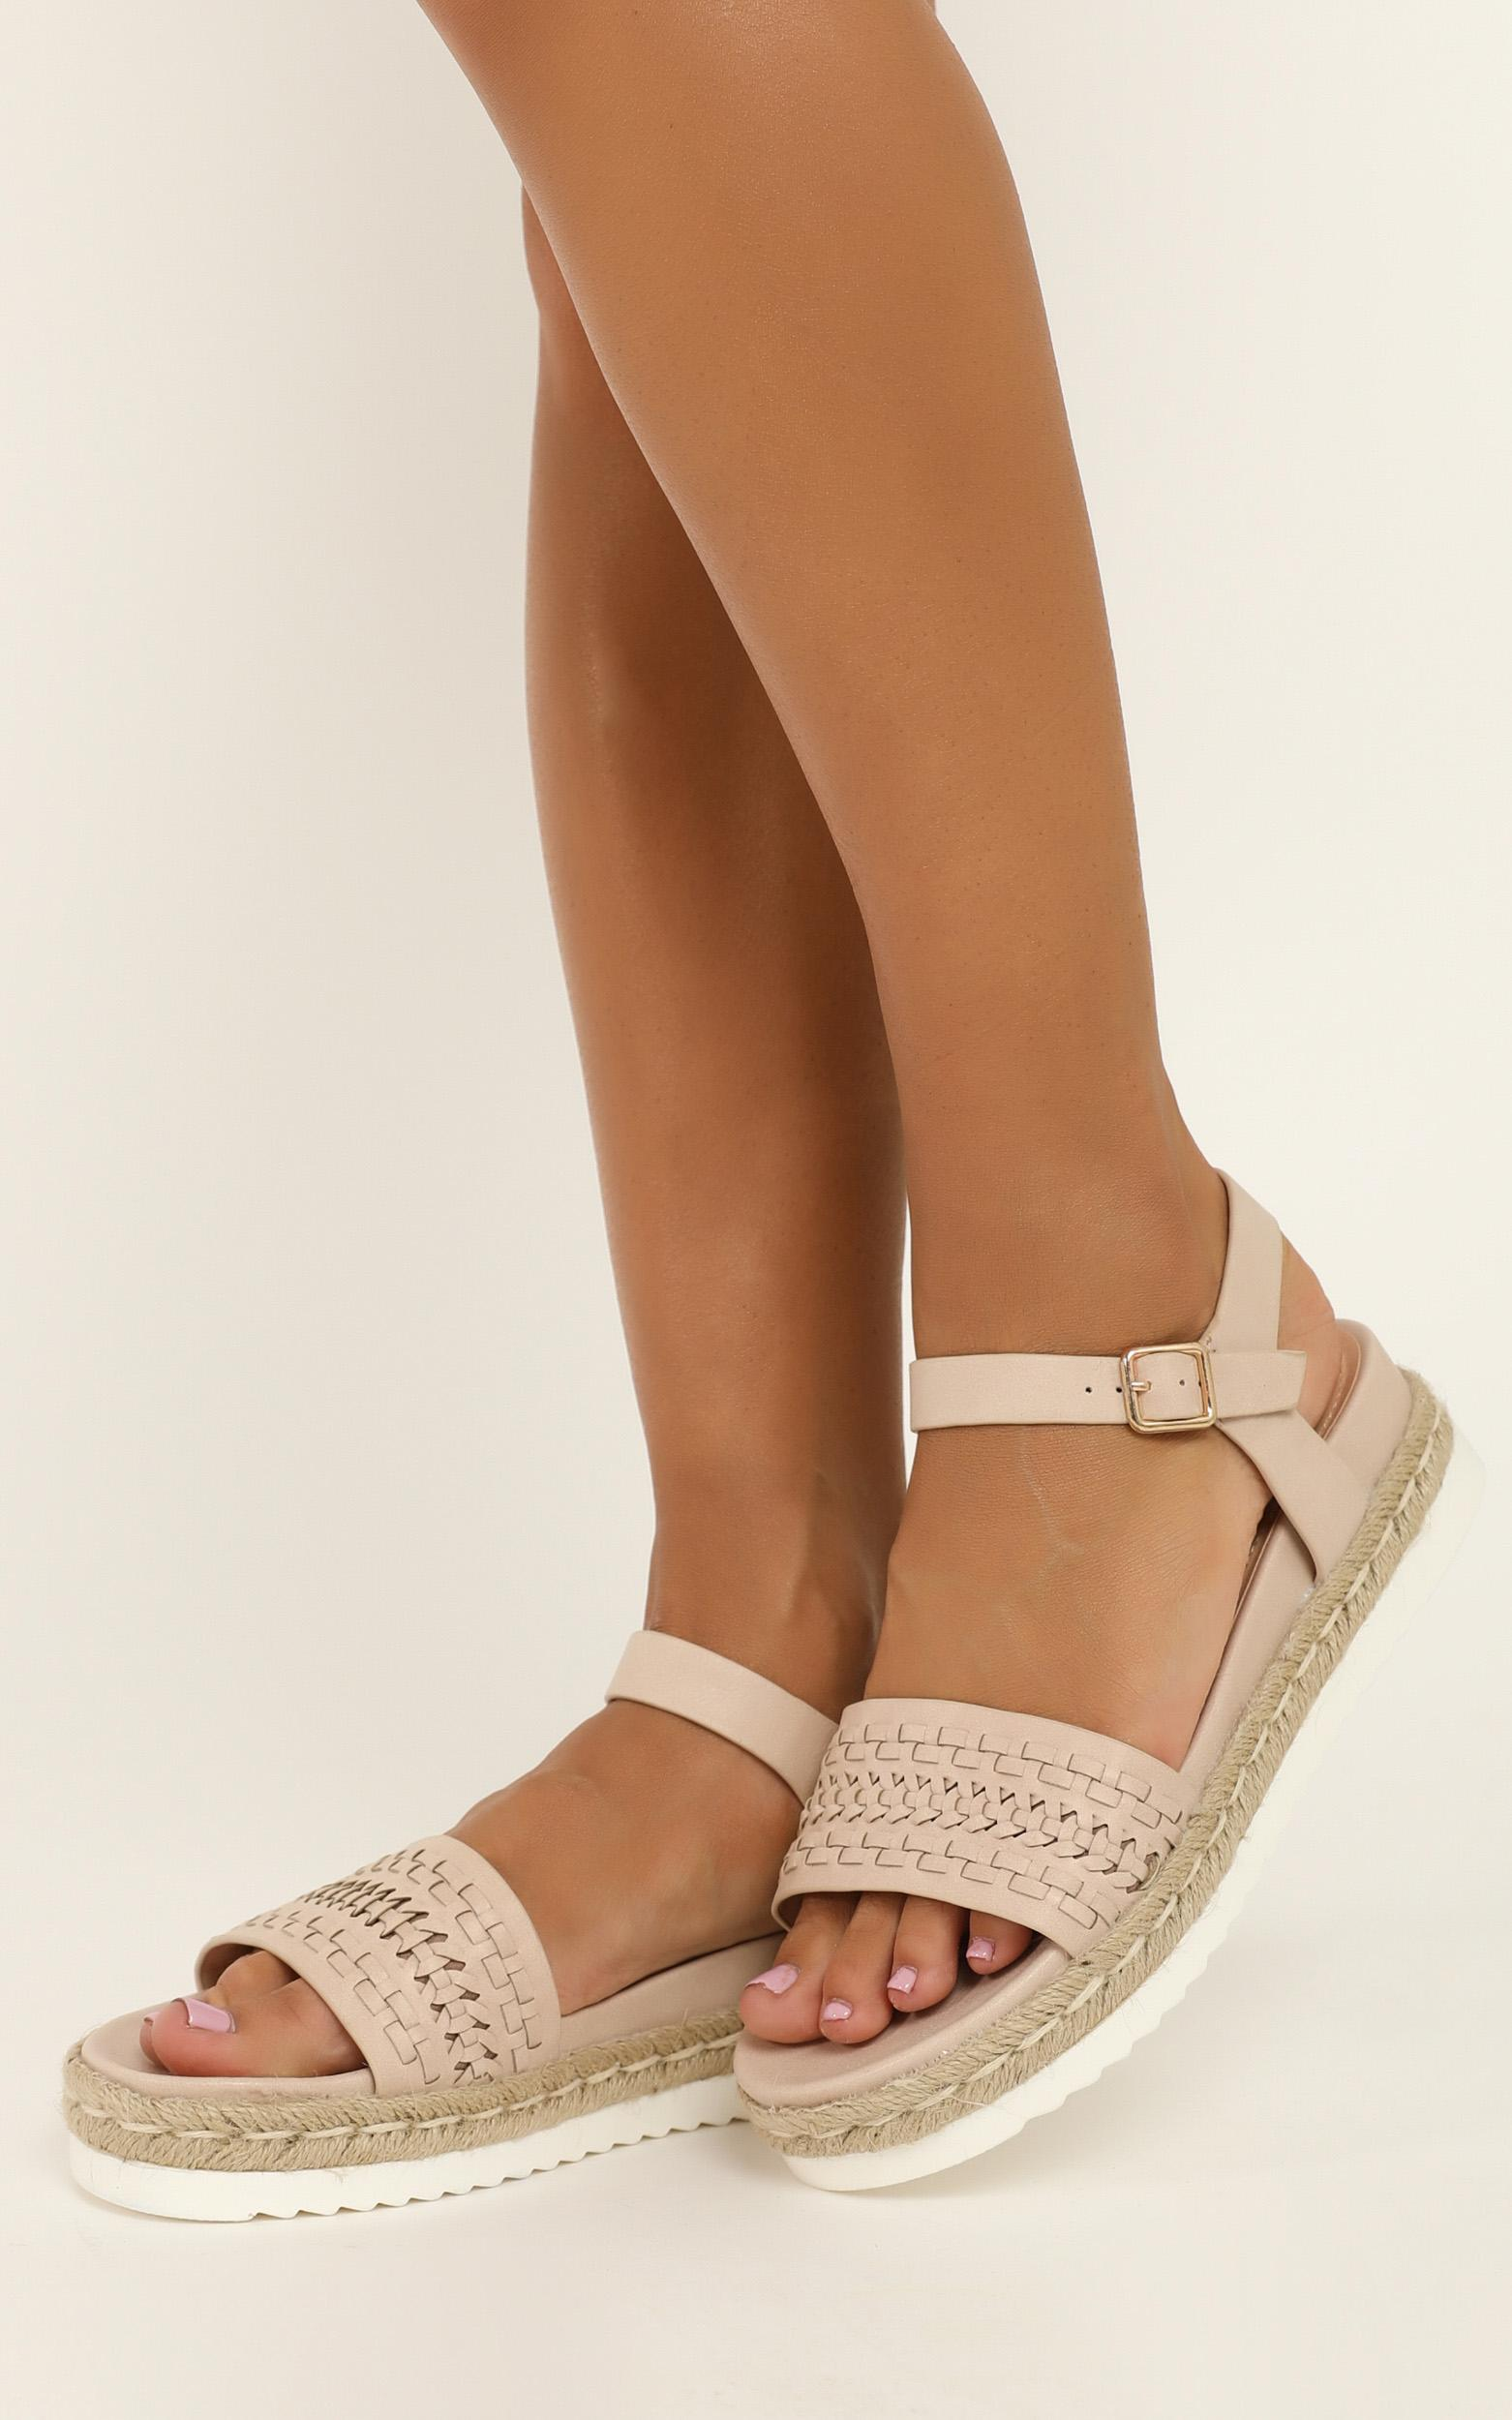 Verali - Disco Sandals in blush smooth - 10, Blush, hi-res image number null